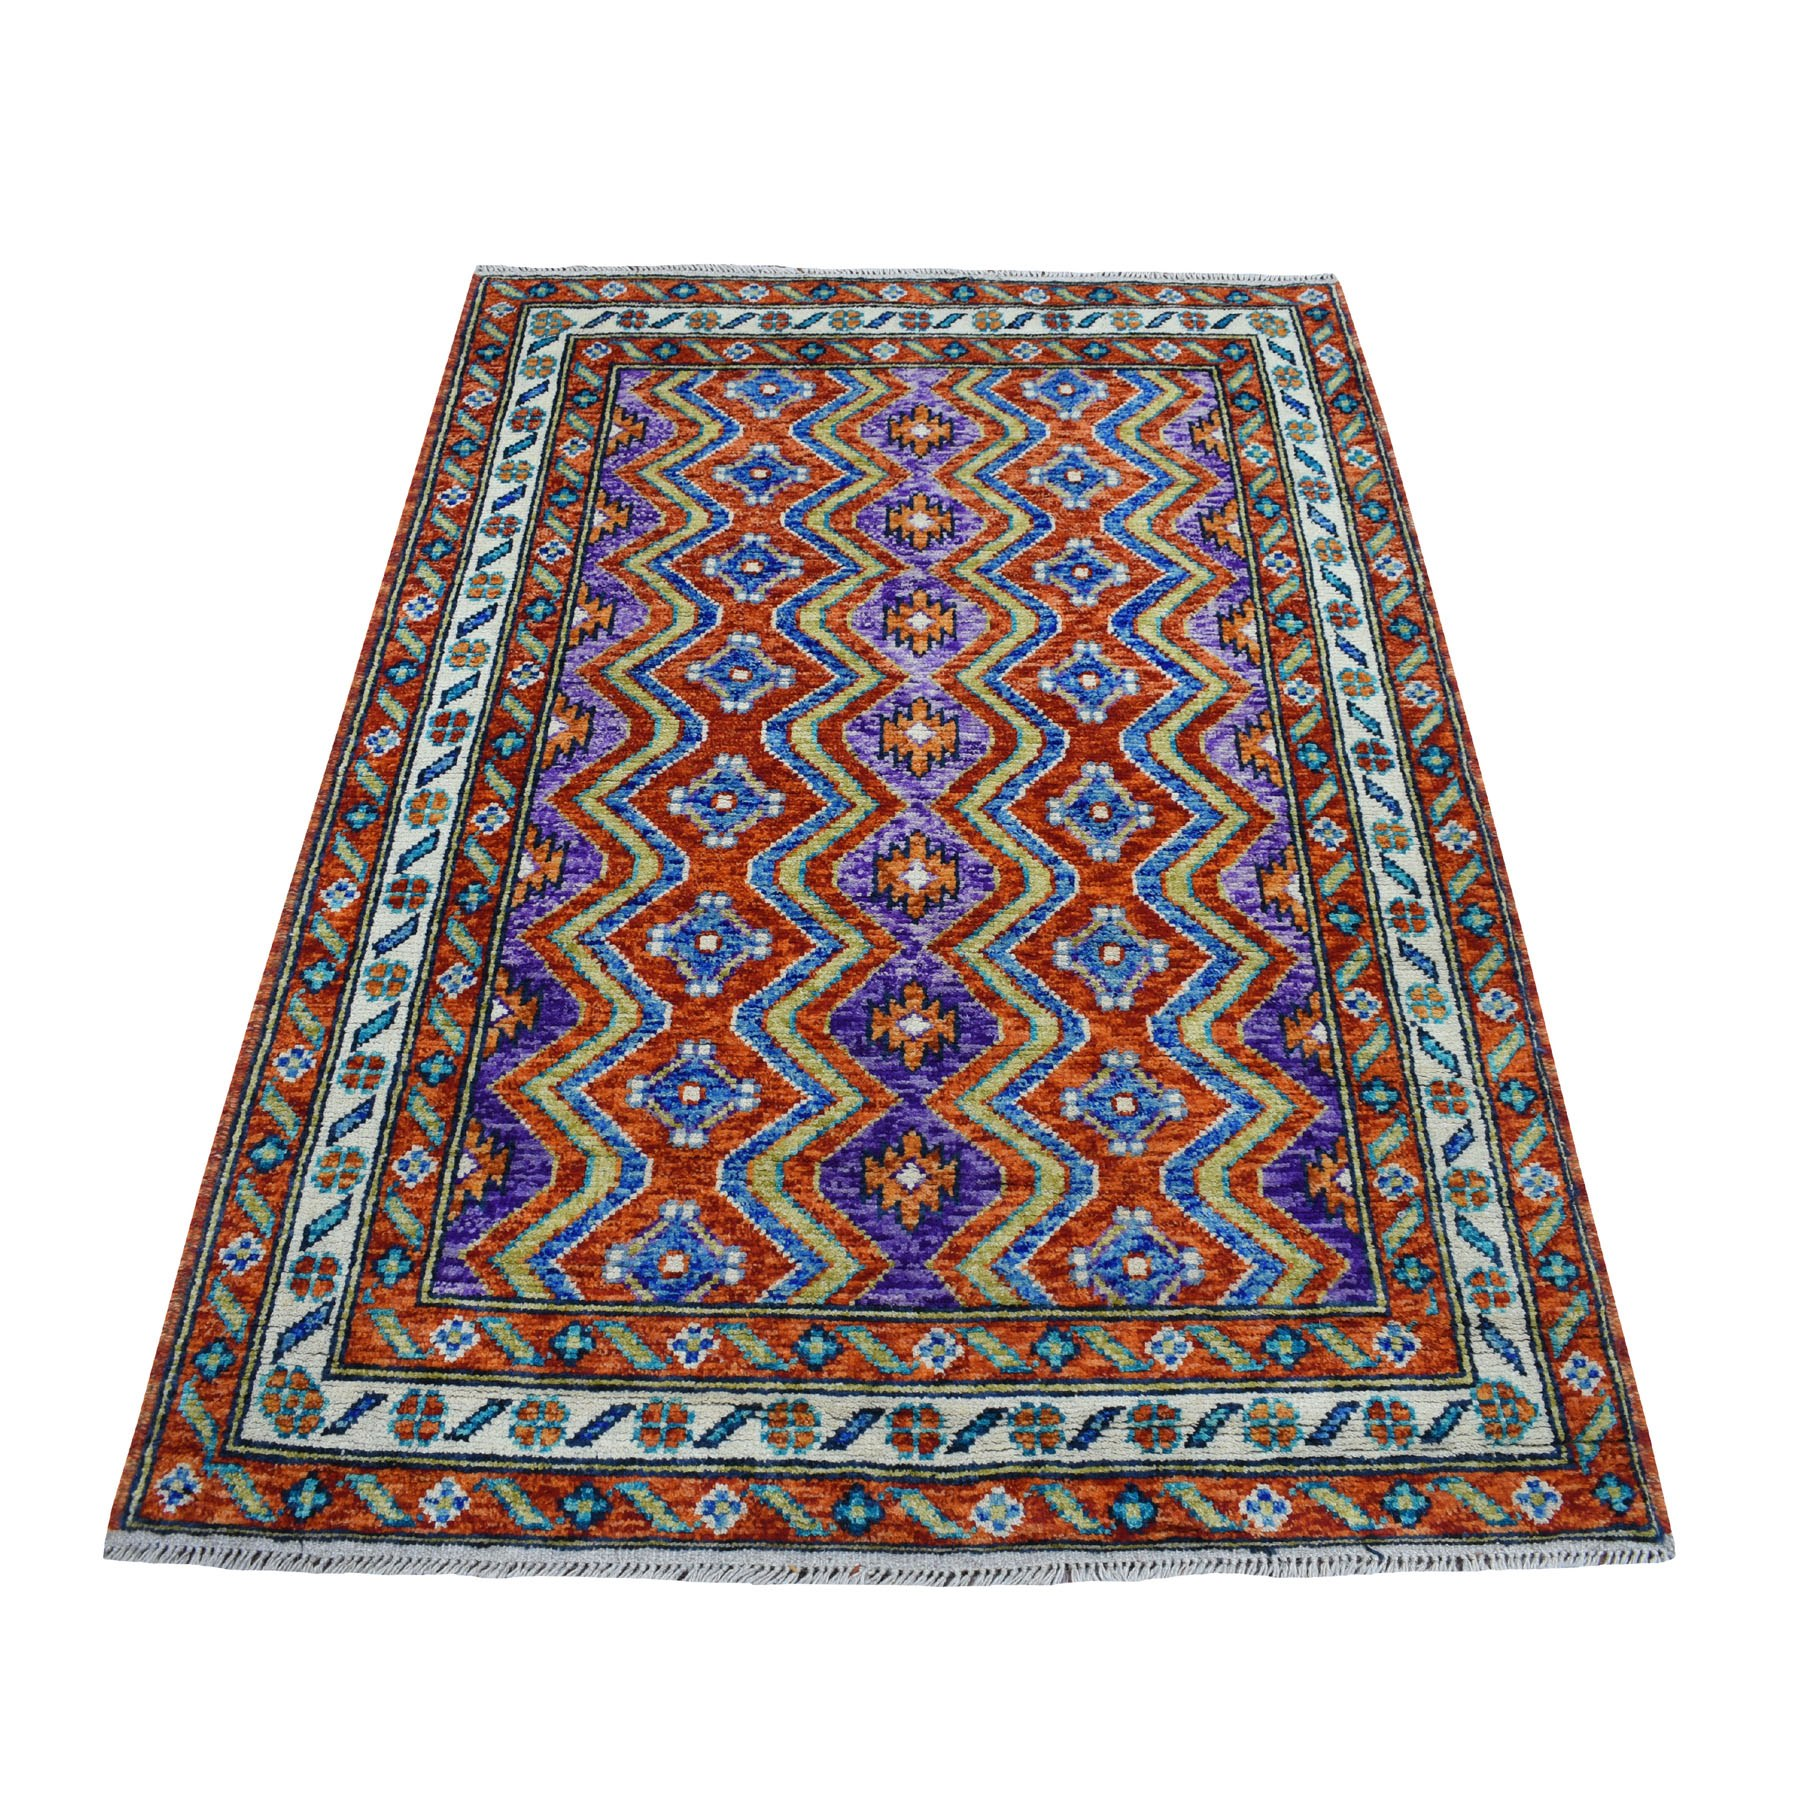 "4'2""x5'10"" Orange Colorful Afghan Baluch Tribal Design Pure Wool Hand Woven Oriental Rug"